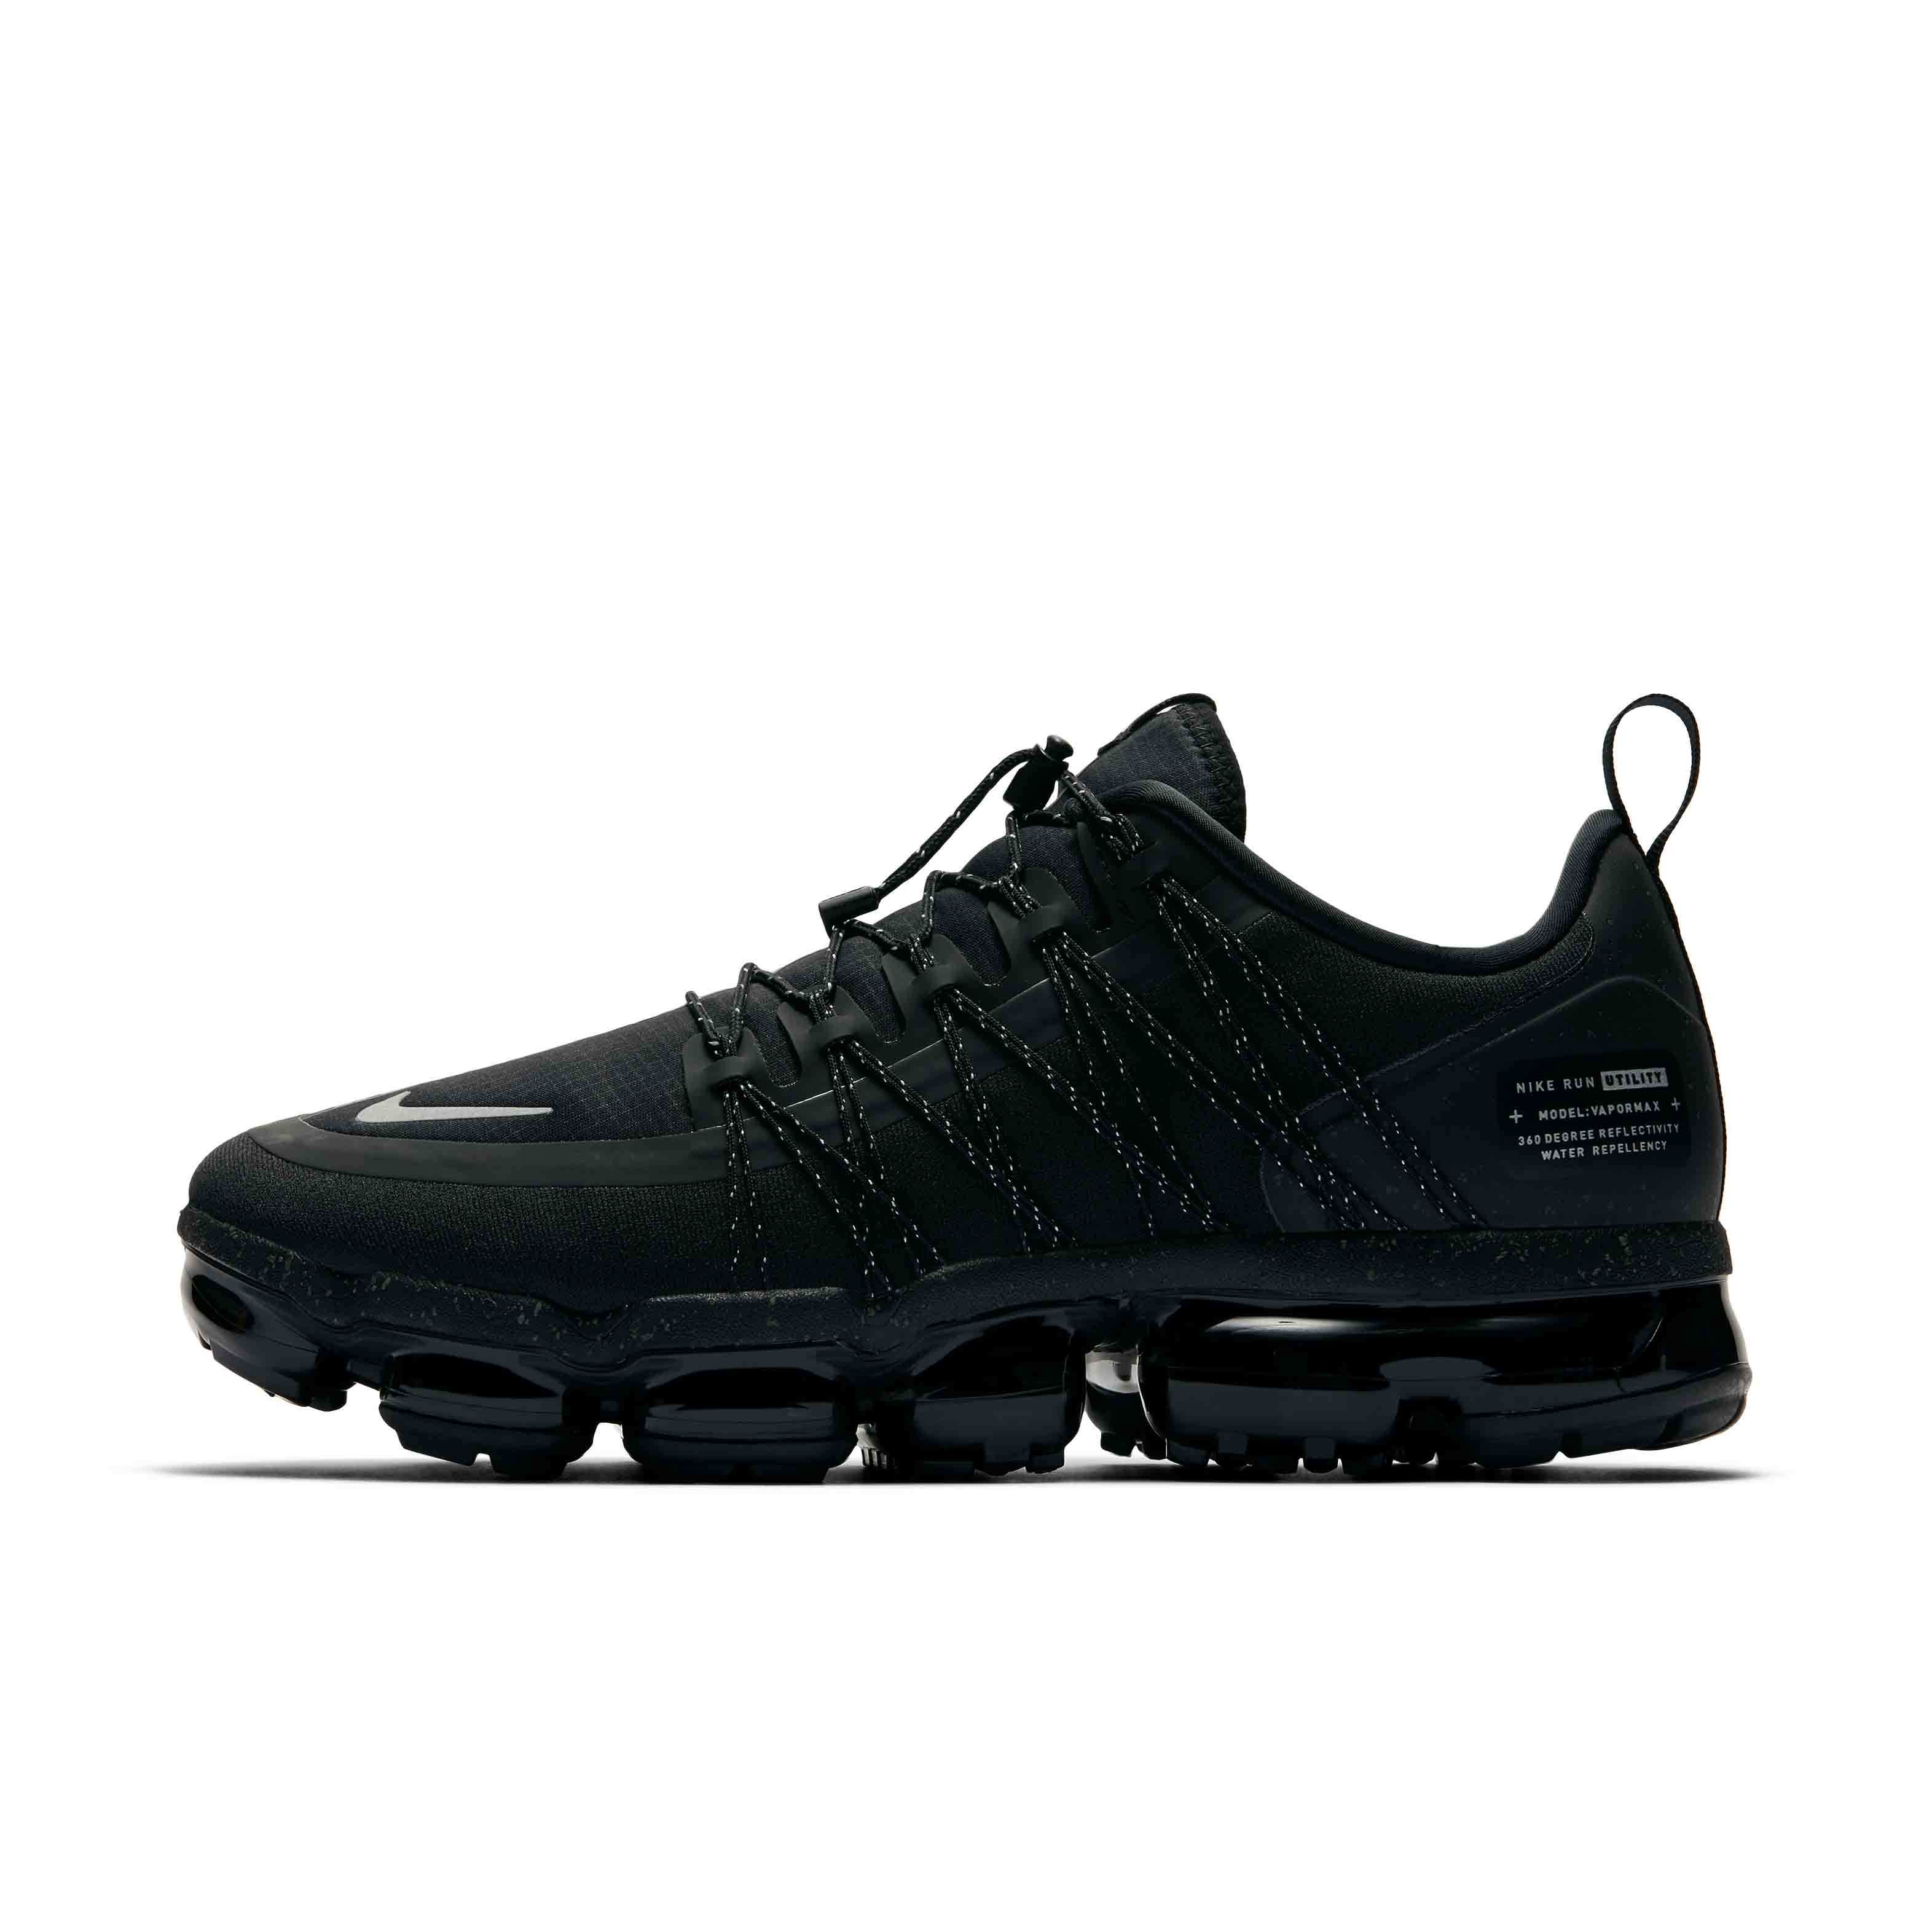 more photos 8fcd0 69b58 US $77.76 73% OFF|Nike Air Vapormax RUN UTILITY Official Men Running Shoes  Utility Shock Absorption Comfortable Breathable Sneakers #AQ8810 003-in ...